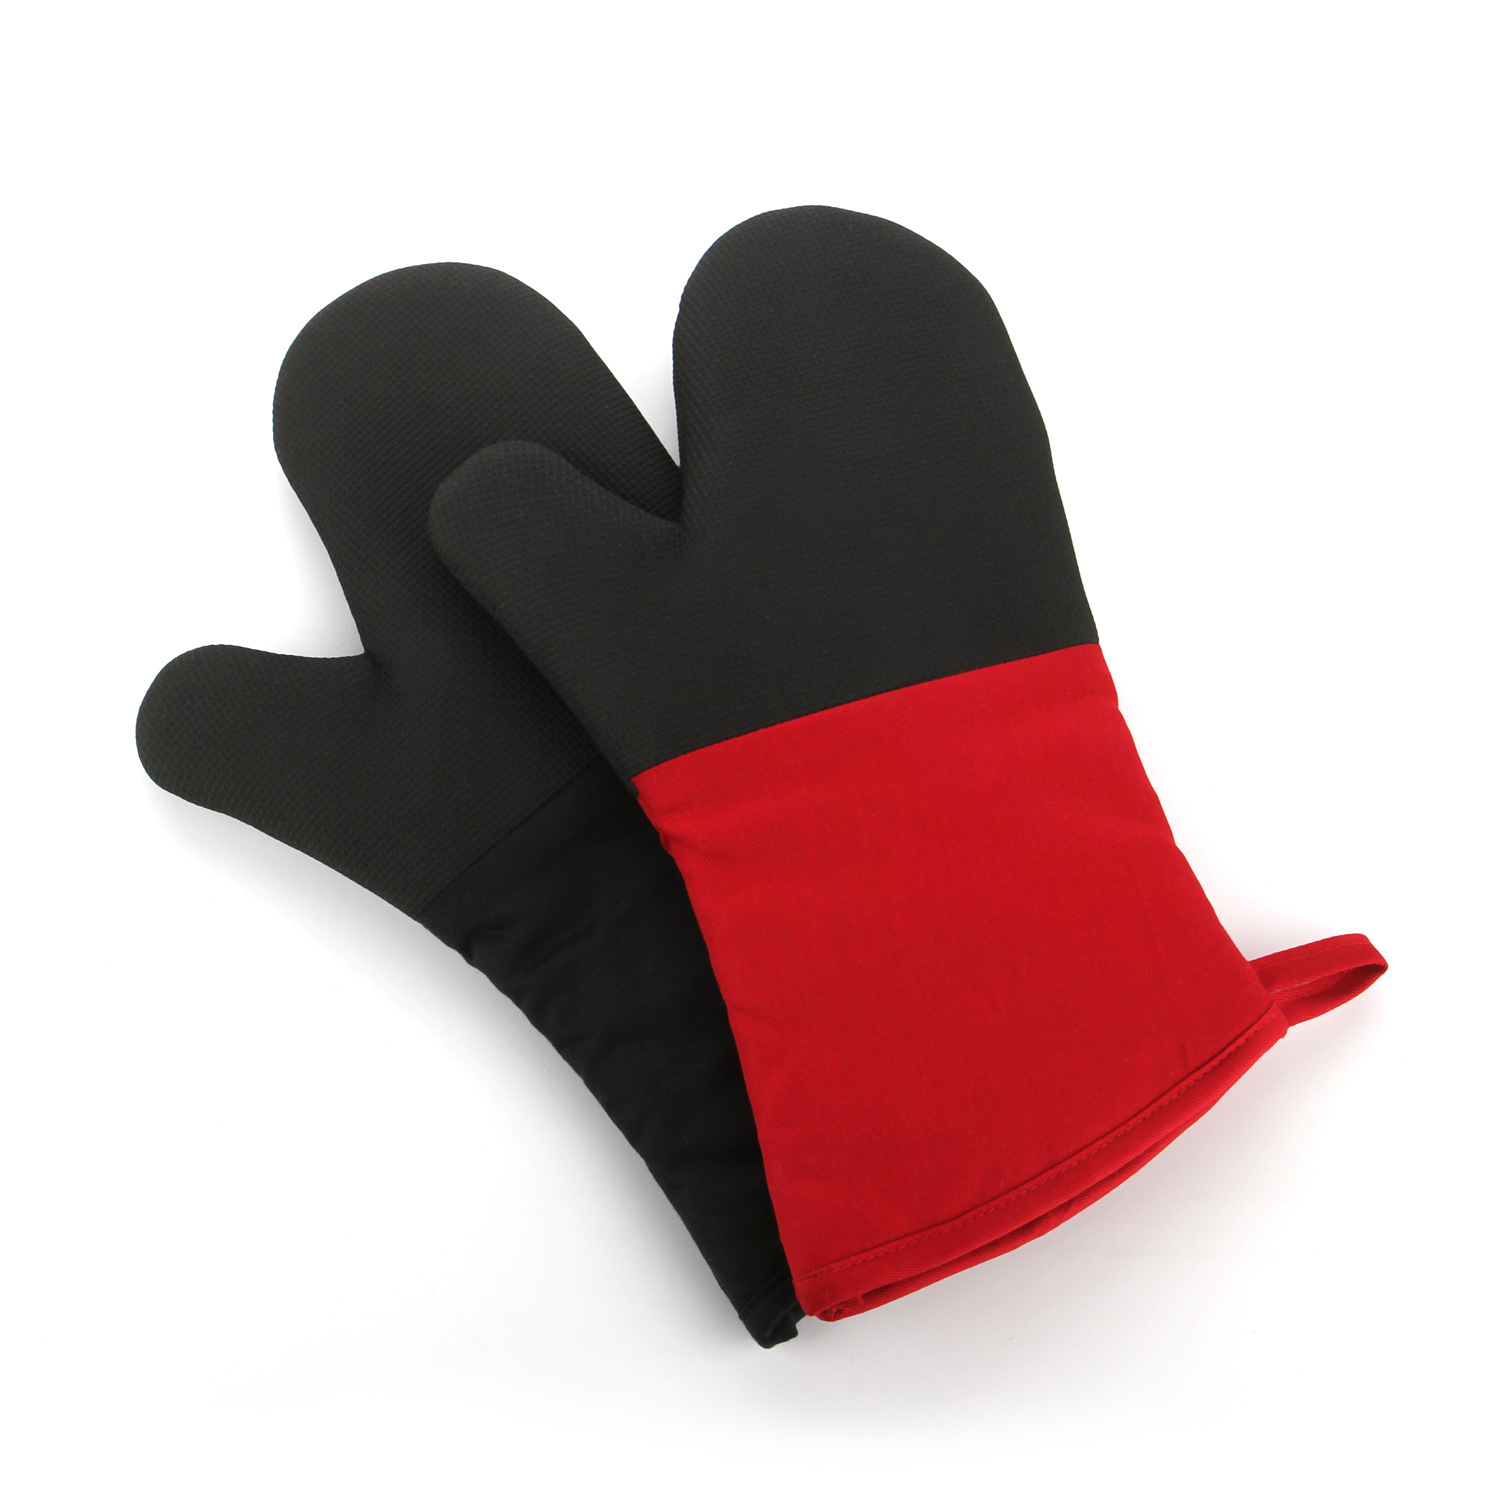 [Insulated King] Specialized Households Required High-End Microwave Oven Gloves Reddish Black Bakery Oven Insulation Gloves Only